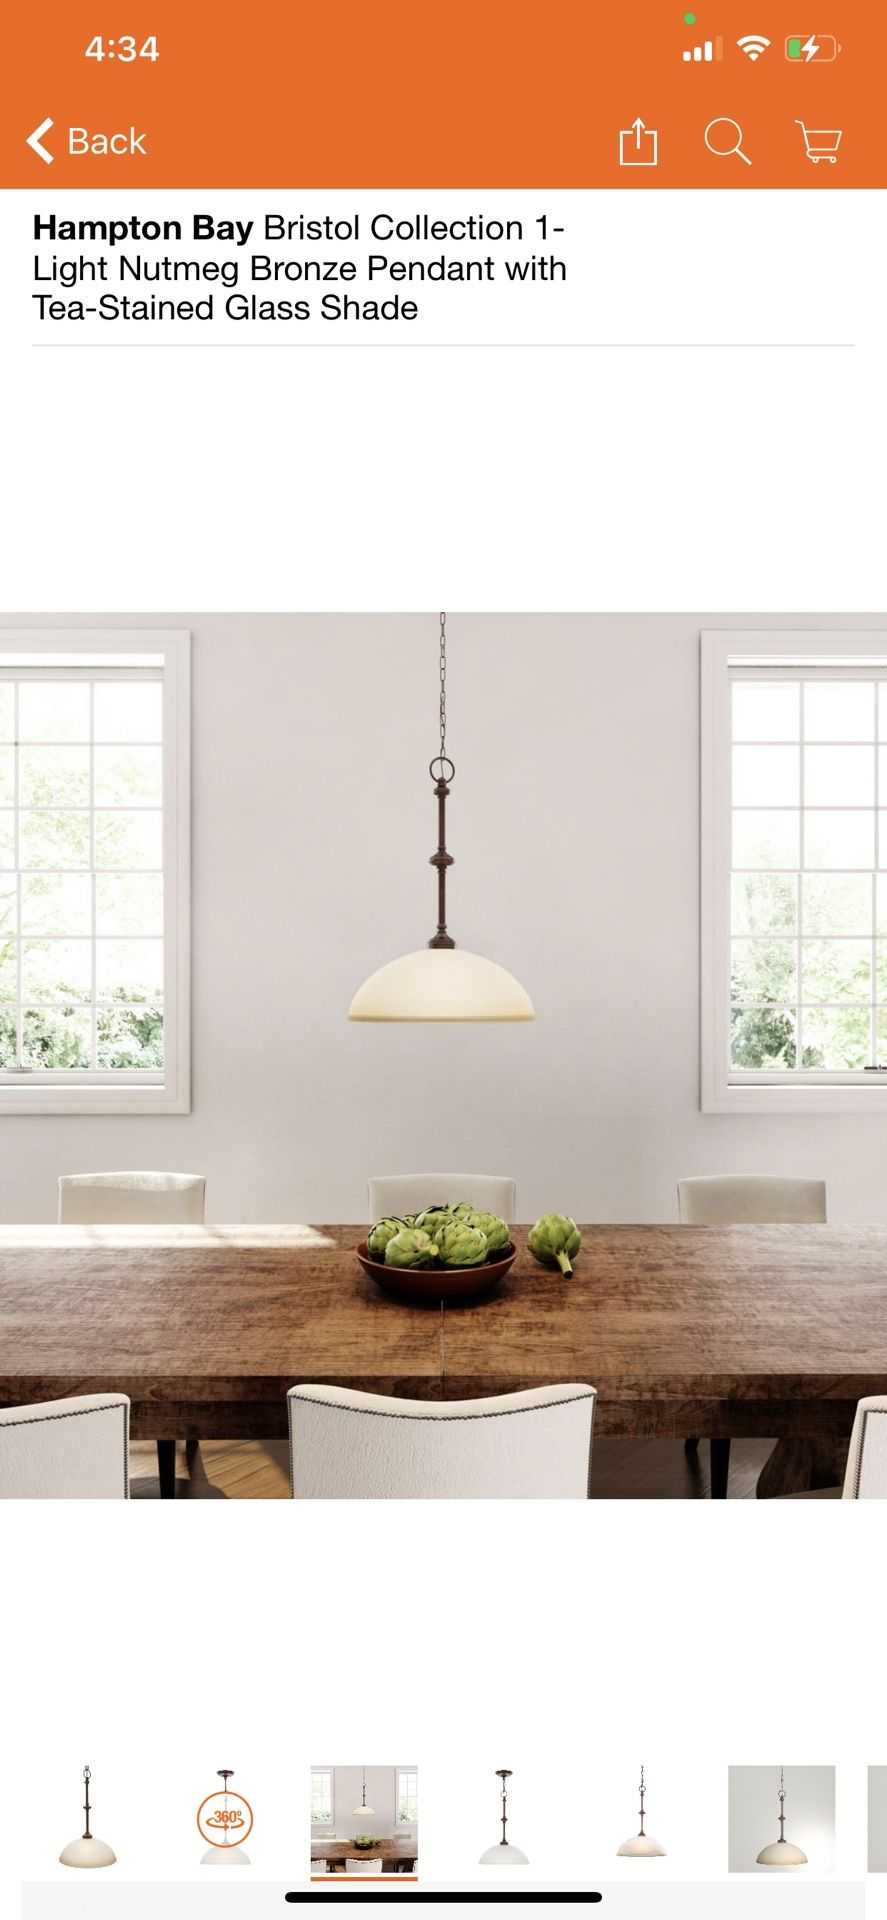 Hampton Bay Bristol Collection 1-Light Nutmeg Bronze Pendant with Tea-Stained Glass Shade